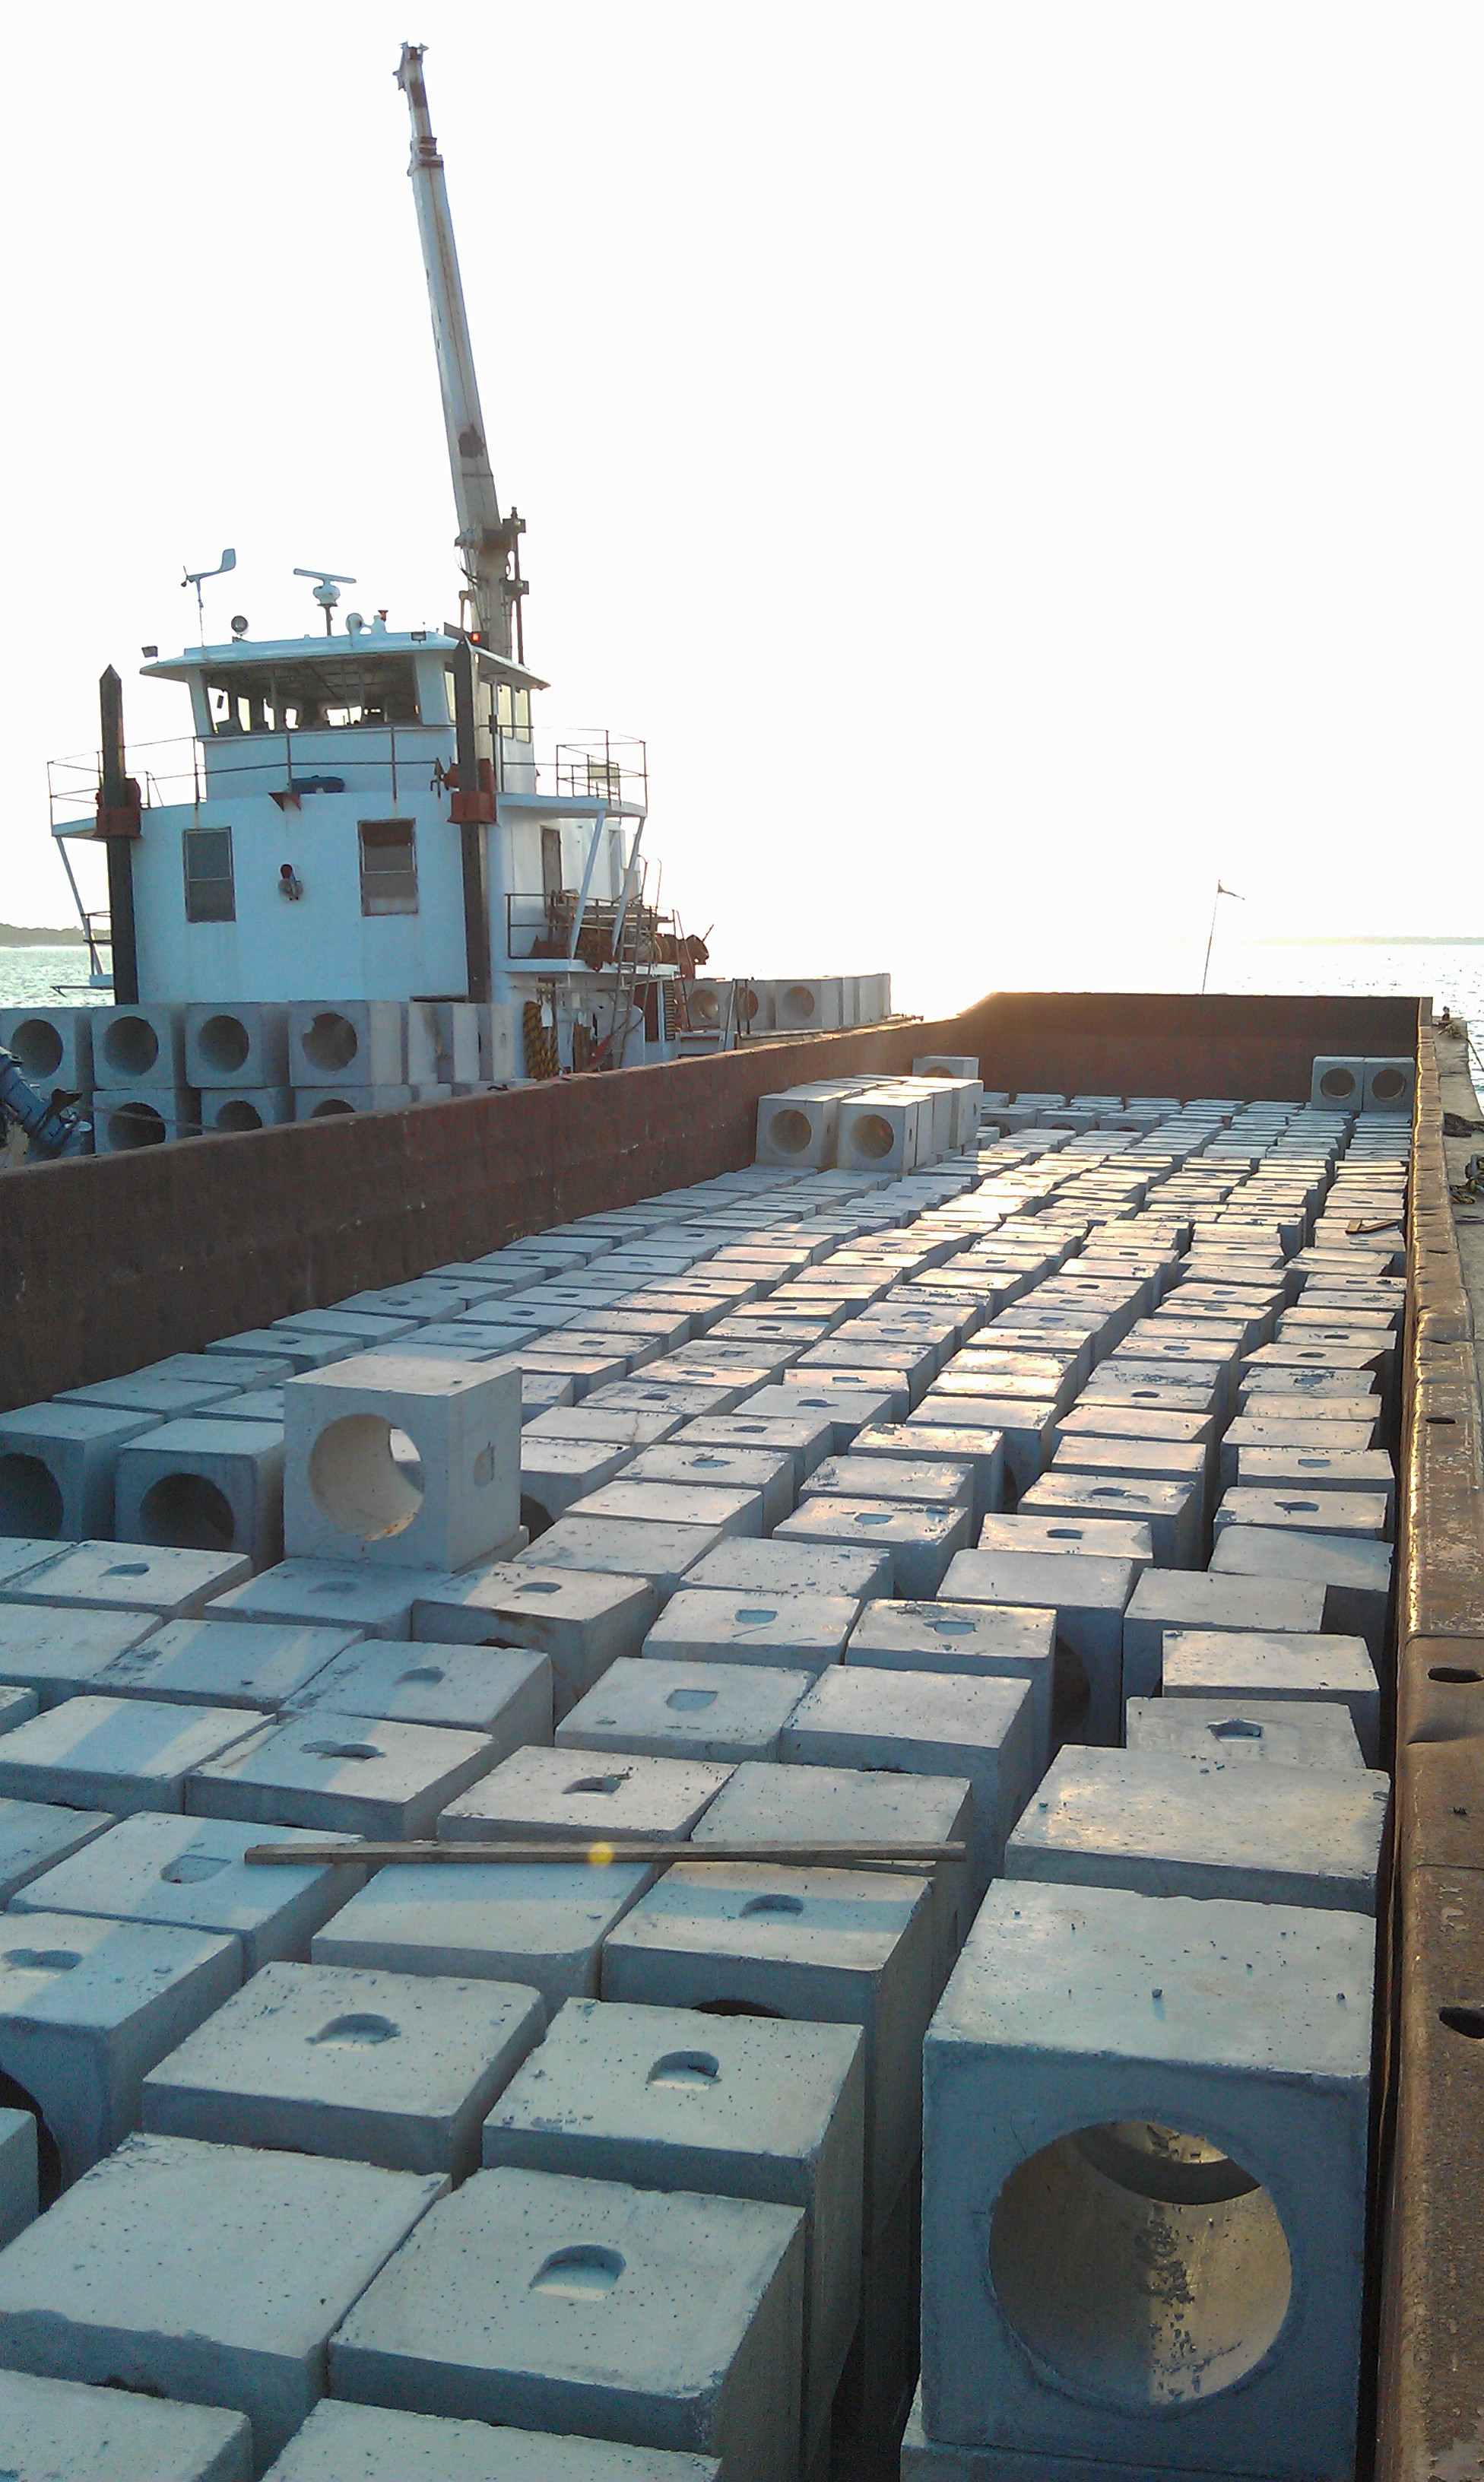 One of two barges loaded with cubes staged near Carabelle, FL to resupply Walter Marine's vessel Maranatha during SFMA reef construction between May 23rd and June 10th, 2011 (Photo Credit: Stewart Walter, Walter Marine)